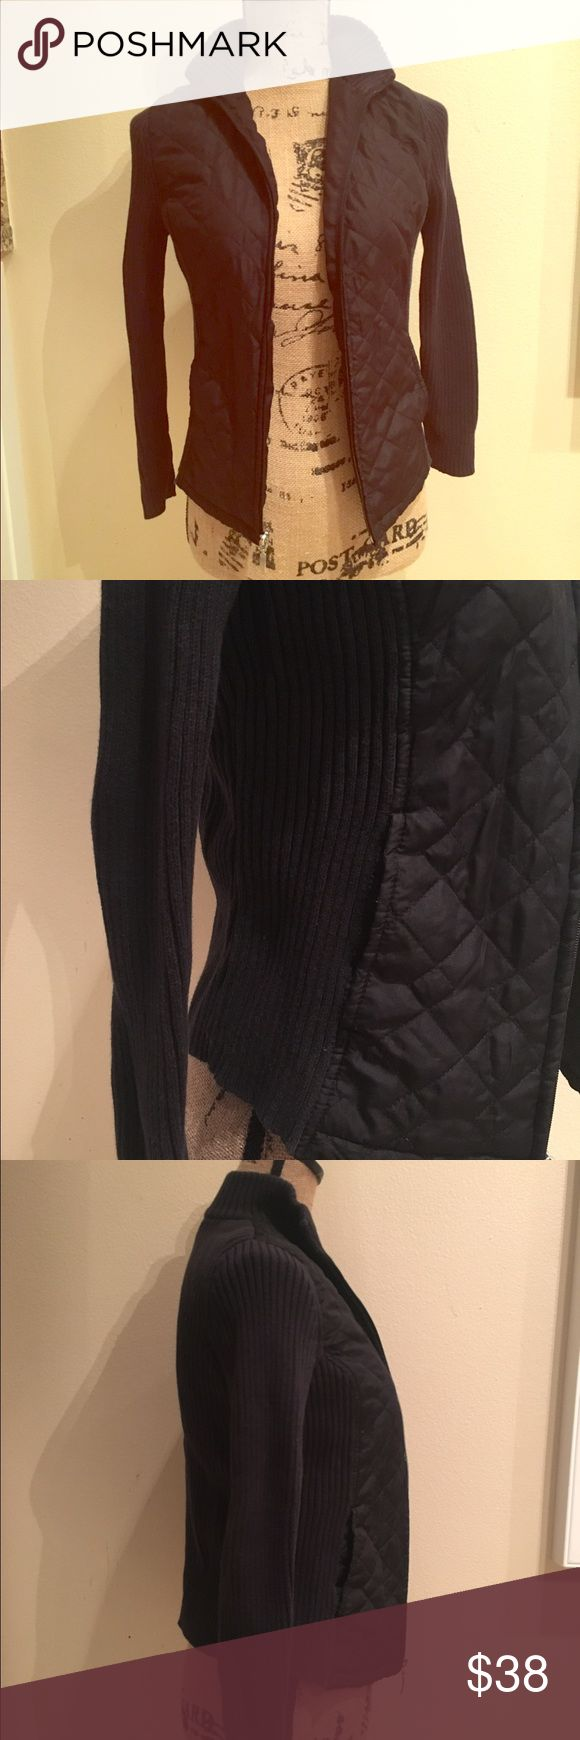 Black quilted front sweater This is a total ski bunny top. It's lightly worn, warm and quilted in the front. Trendy and fun for a morning jog, or under a warm coat in the snow. Zipper side pockets and zip up front! Adorable! Sweaters